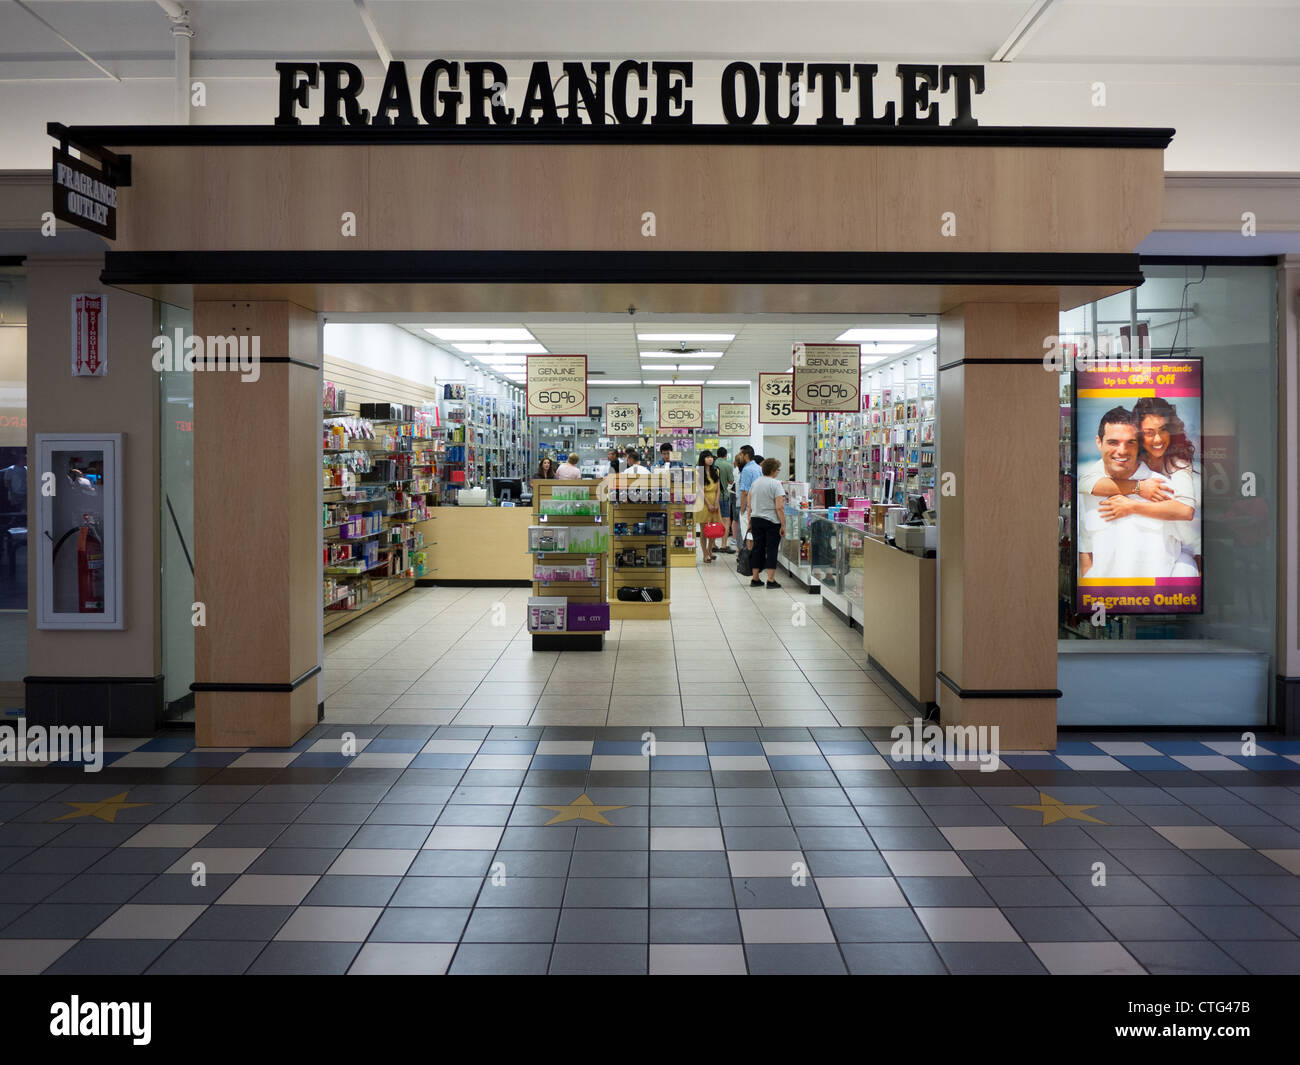 fragrance outlet store entrance retail shopping mall - Stock Image